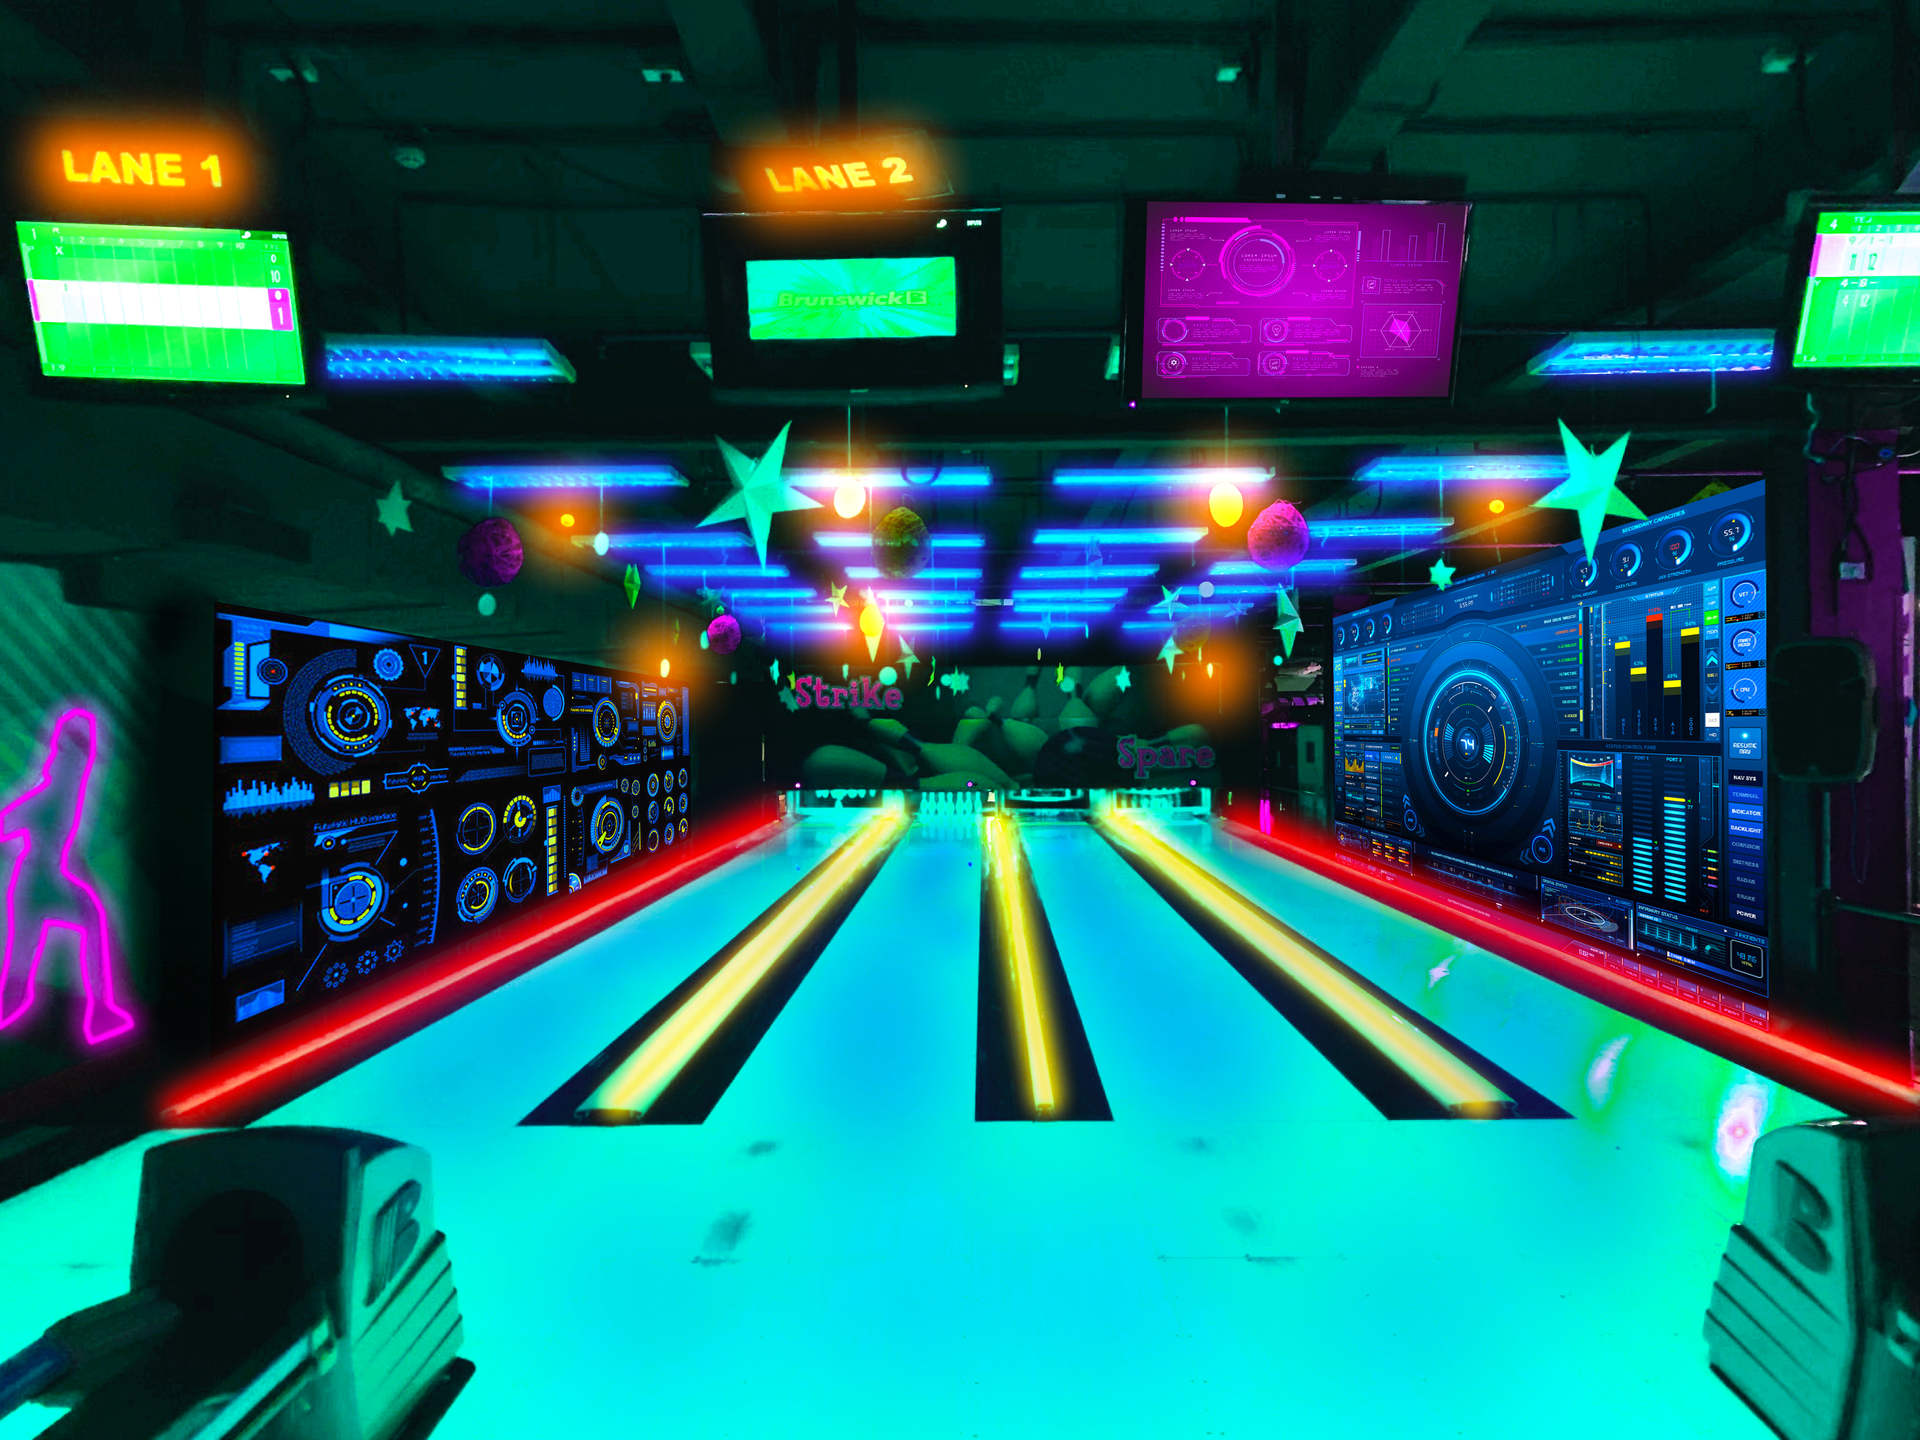 Let's go Bowling in 2077